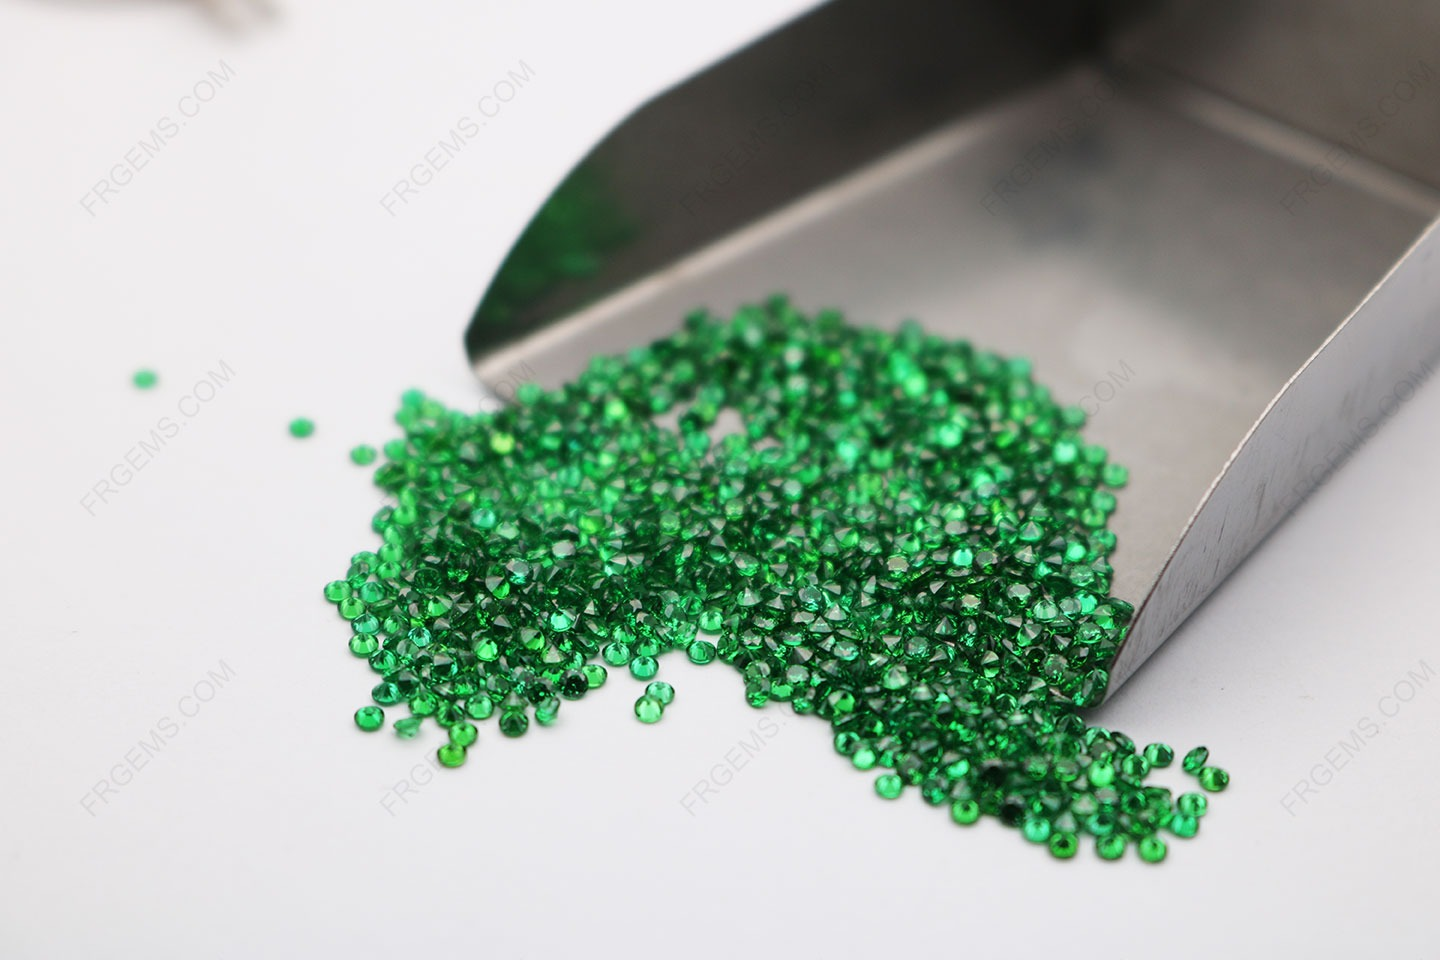 Cubic_Zirconia_Green_Round_diamond_Faceted_Cut_1.70mm_Melee_stones_IMG_2945